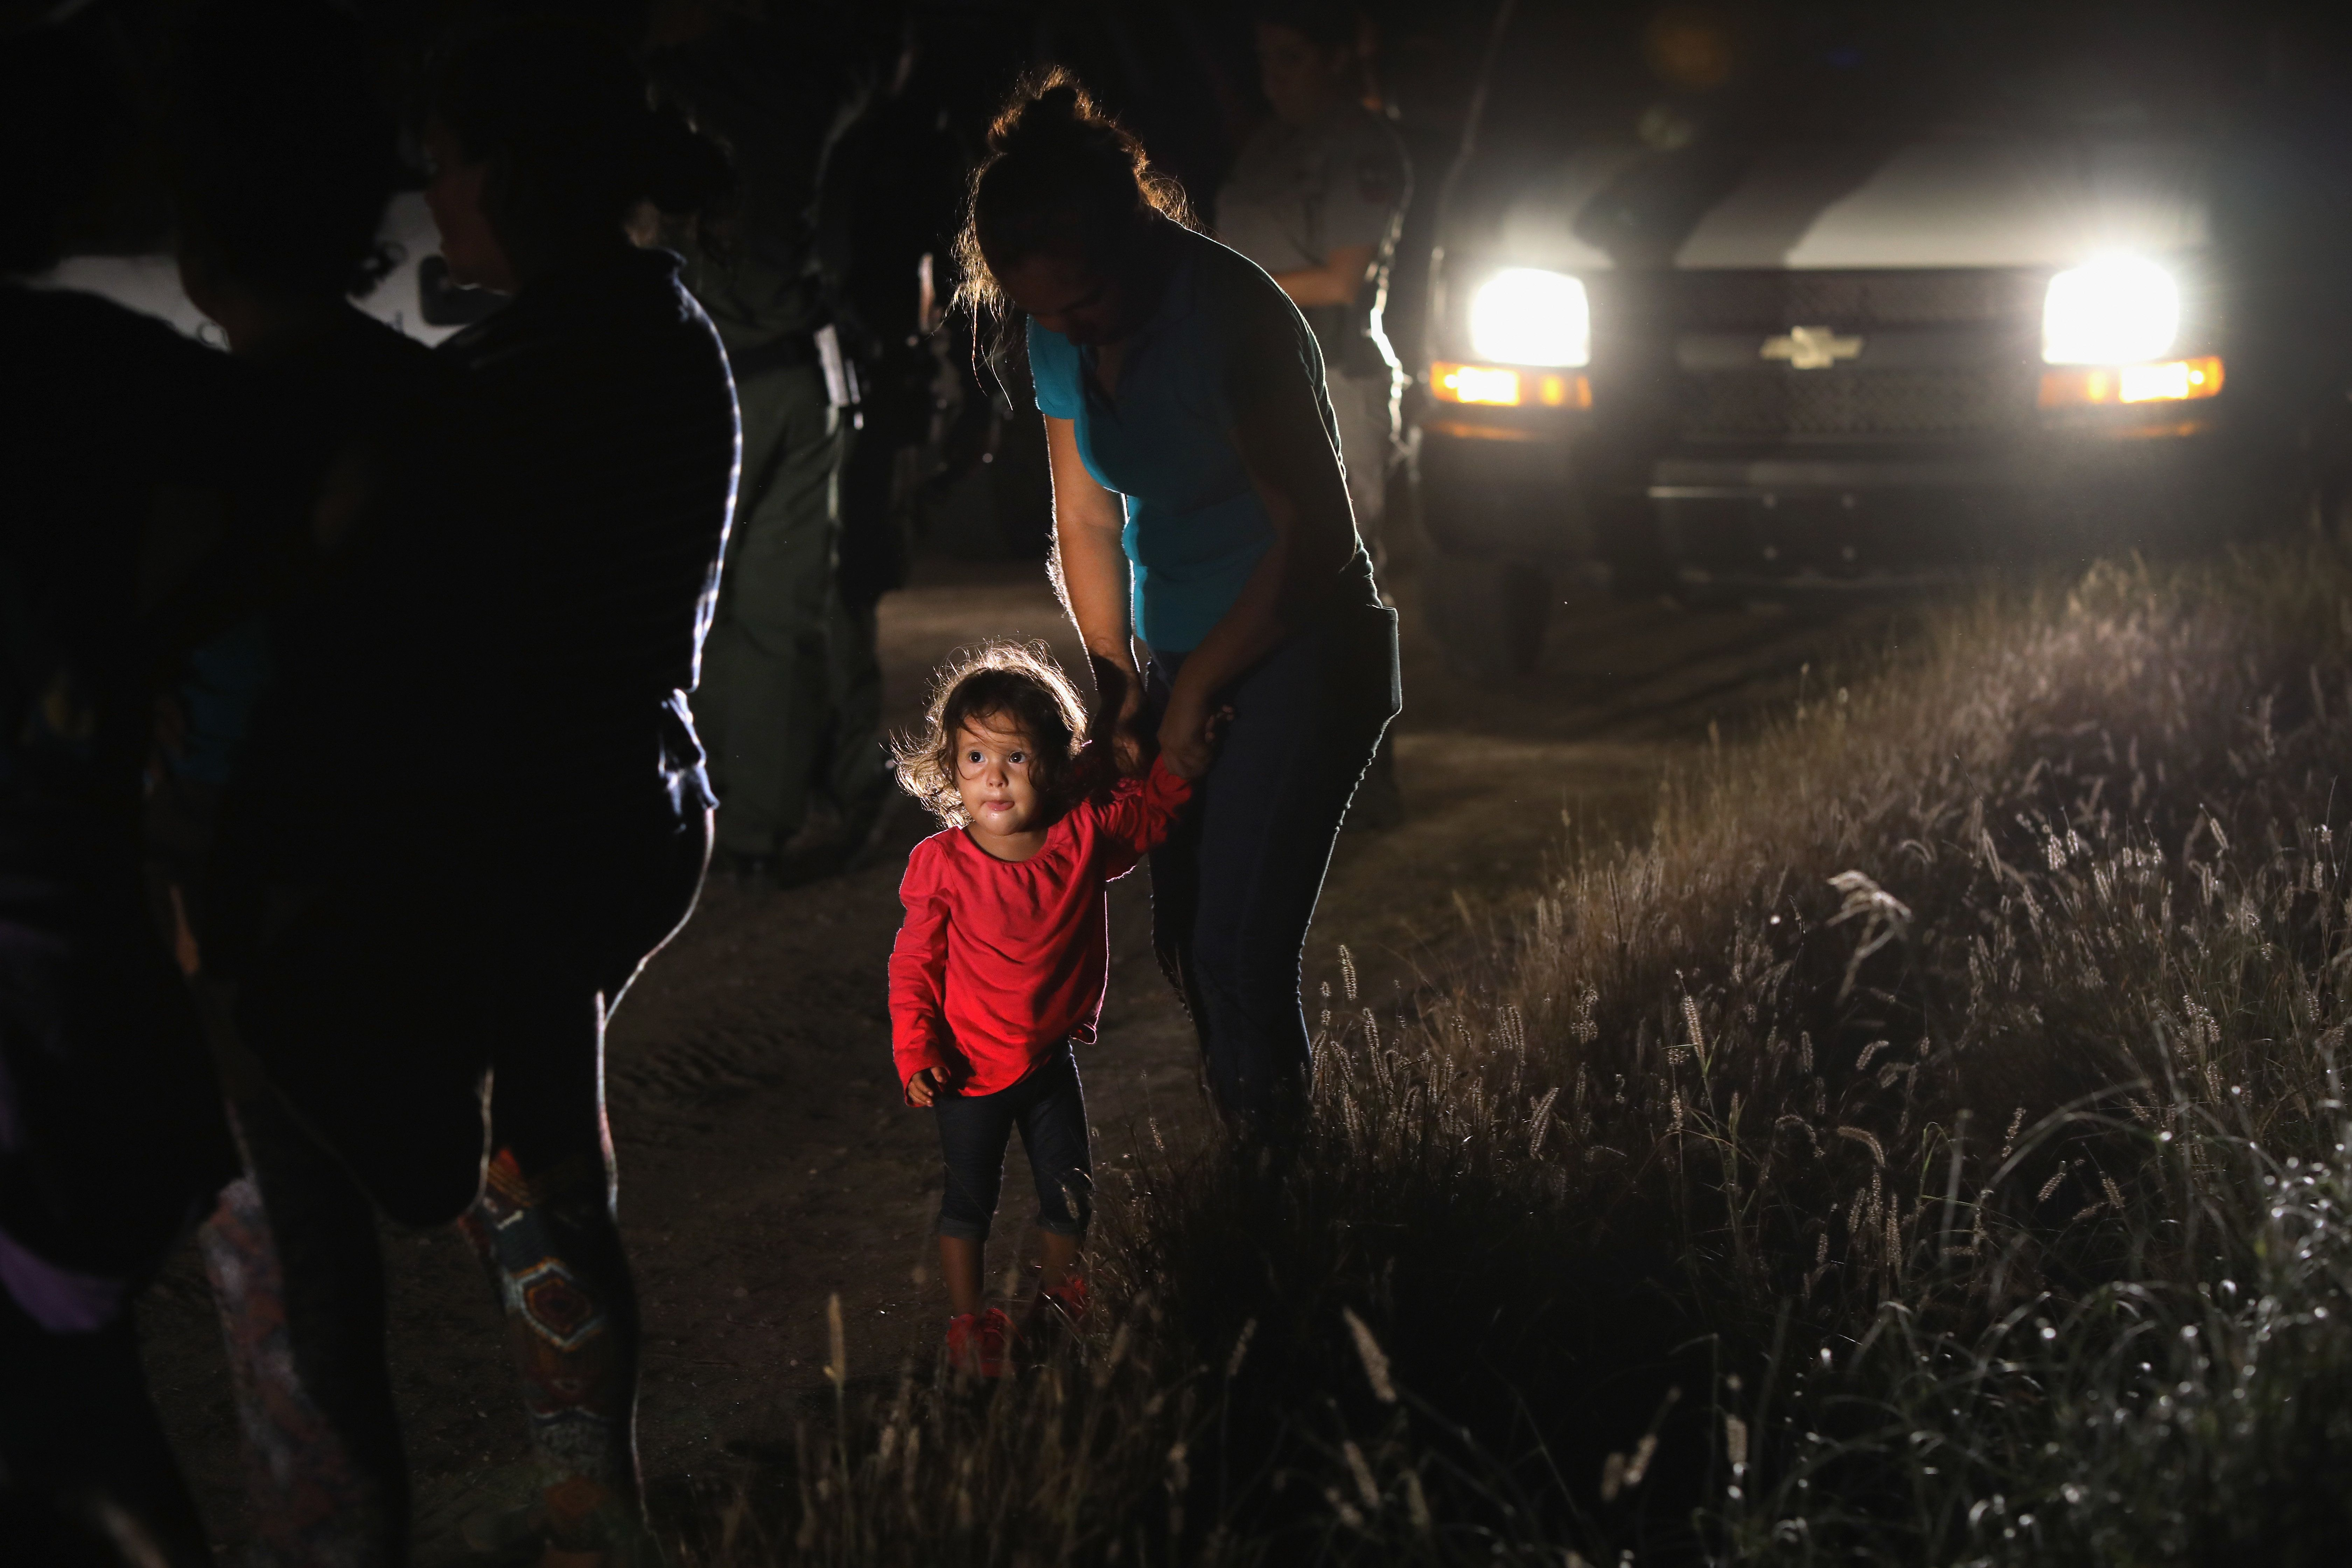 MCALLEN, TX - JUNE 12:  A two-year-old Honduran stands with her mother after being detained by U.S. Border Patrol agents near the U.S.-Mexico border on June 12, 2018 in McAllen, Texas. The asylum seekers had rafted across the Rio Grande from Mexico and were detained  before being sent to a Border Patrol processing center for possible separation. Customs and Border Protection (CBP) is executing the Trump administration's 'zero tolerance' policy towards undocumented immigrants. U.S. Attorney General Jeff Sessions also said that domestic and gang violence in immigrants' country of origin would no longer qualify them for political asylum status.  (Photo by John Moore/Getty Images)